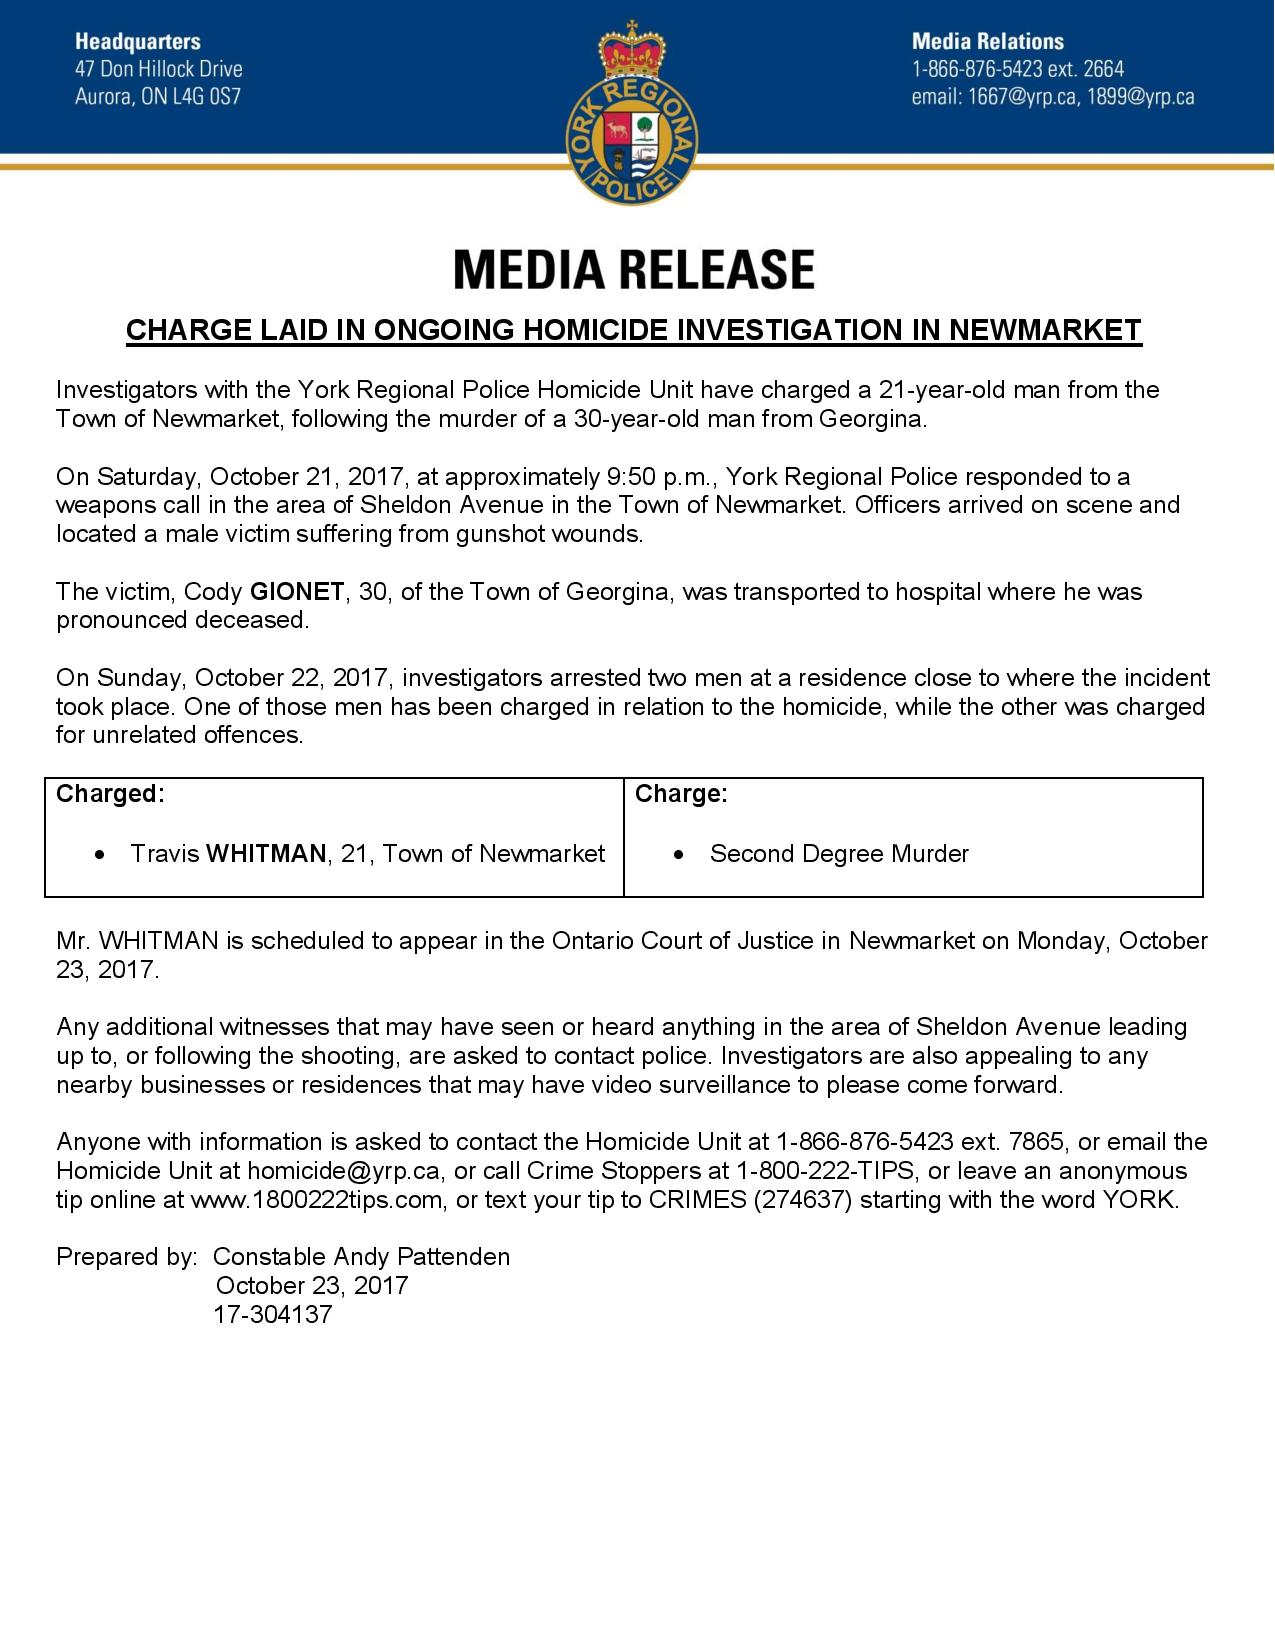 [2017-10-23] CHARGE LAID IN ONGOING HOMICIDE INVESTIGATION IN NEWMARKET-page-001.jpg